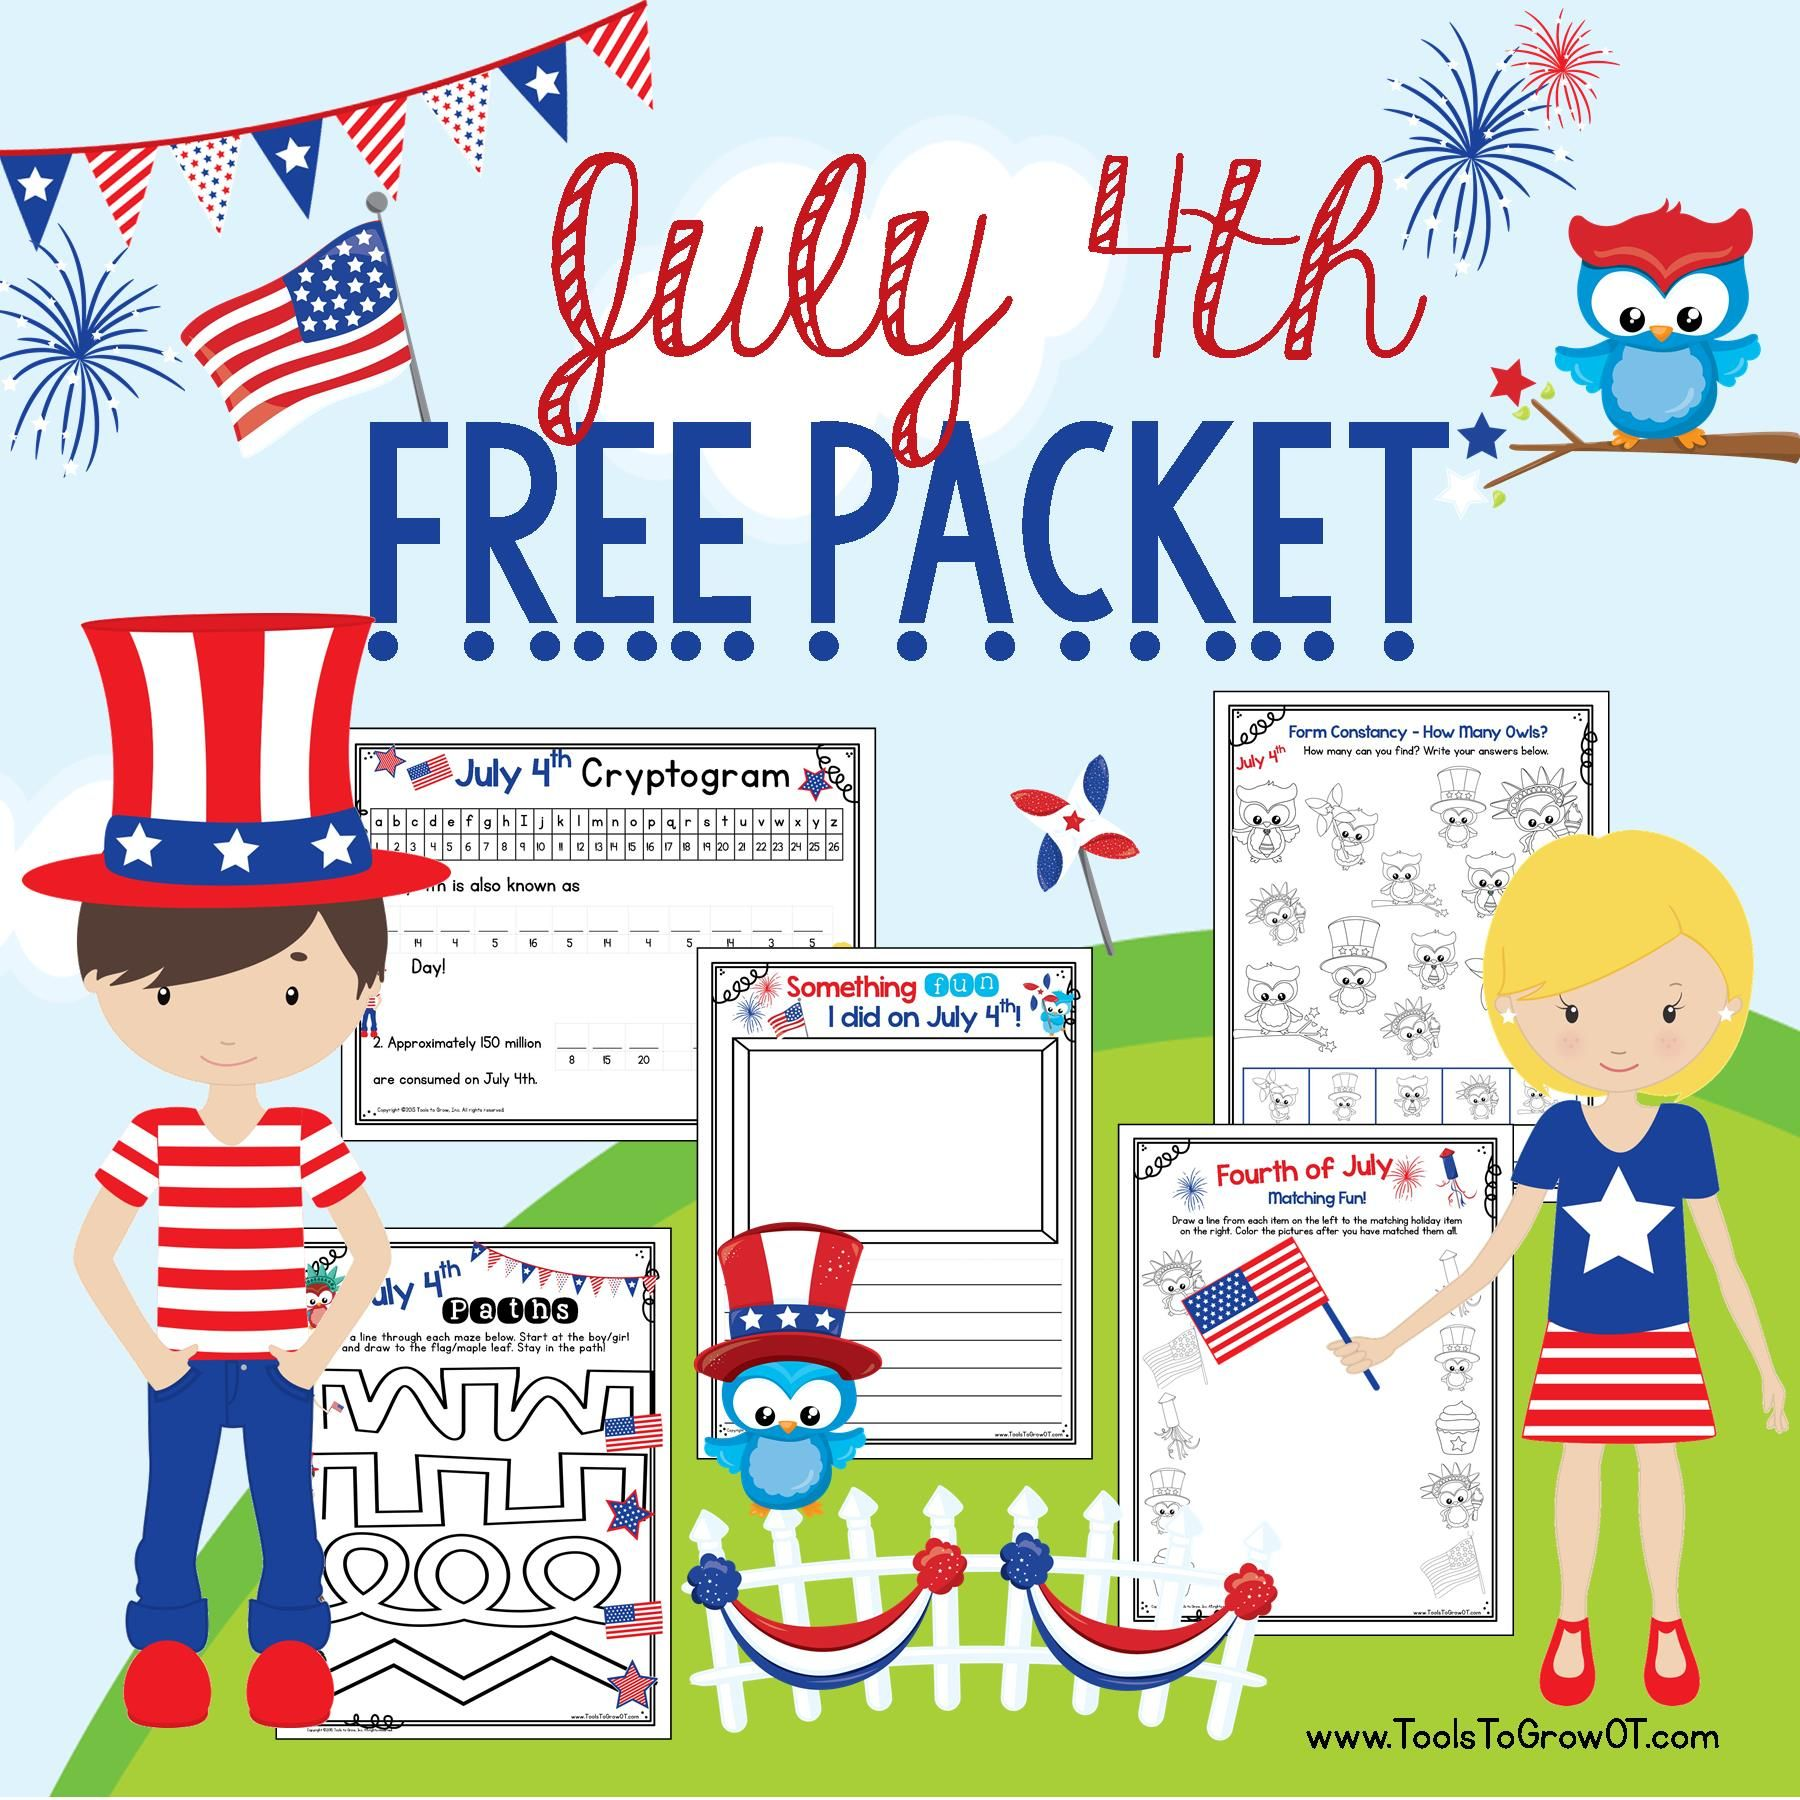 Free July 4th Packet Includes Fourth Of July Handwriting Page Maze Paths Cryptogram Form Constancy Independence Day Activities Fourth Of July July Crafts [ 1800 x 1800 Pixel ]